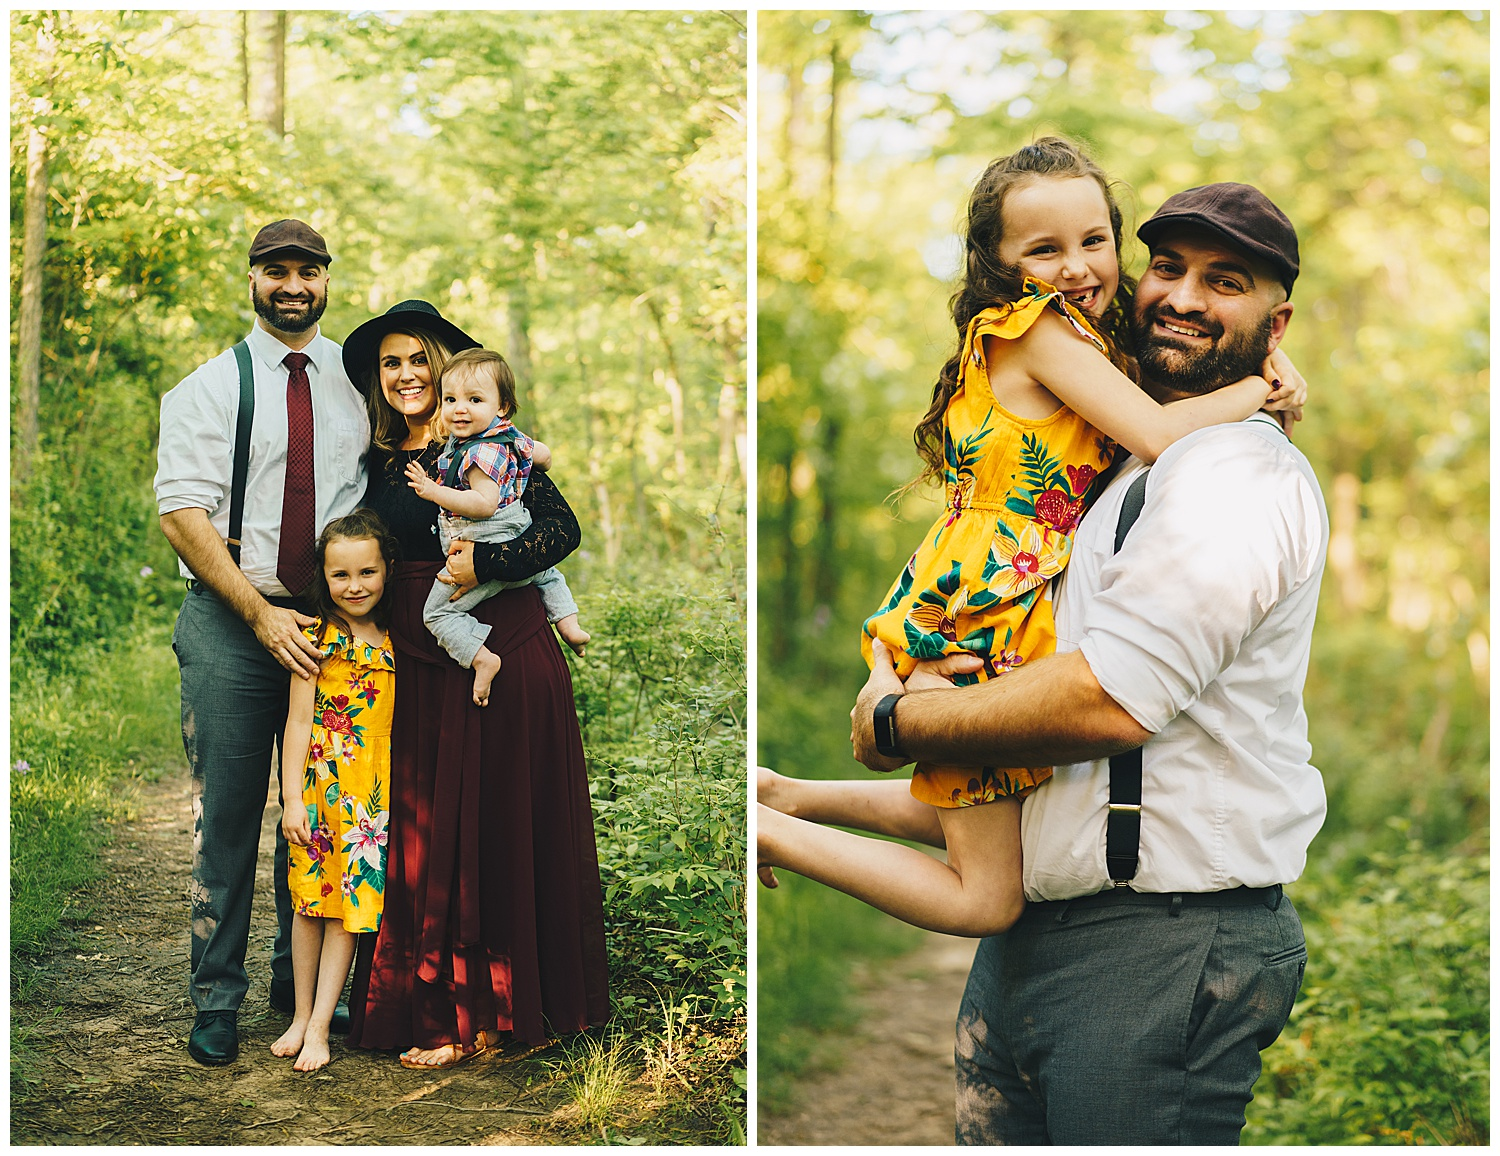 Nashville Wedding Photographer // Franklin, Tennessee Wedding Photographer